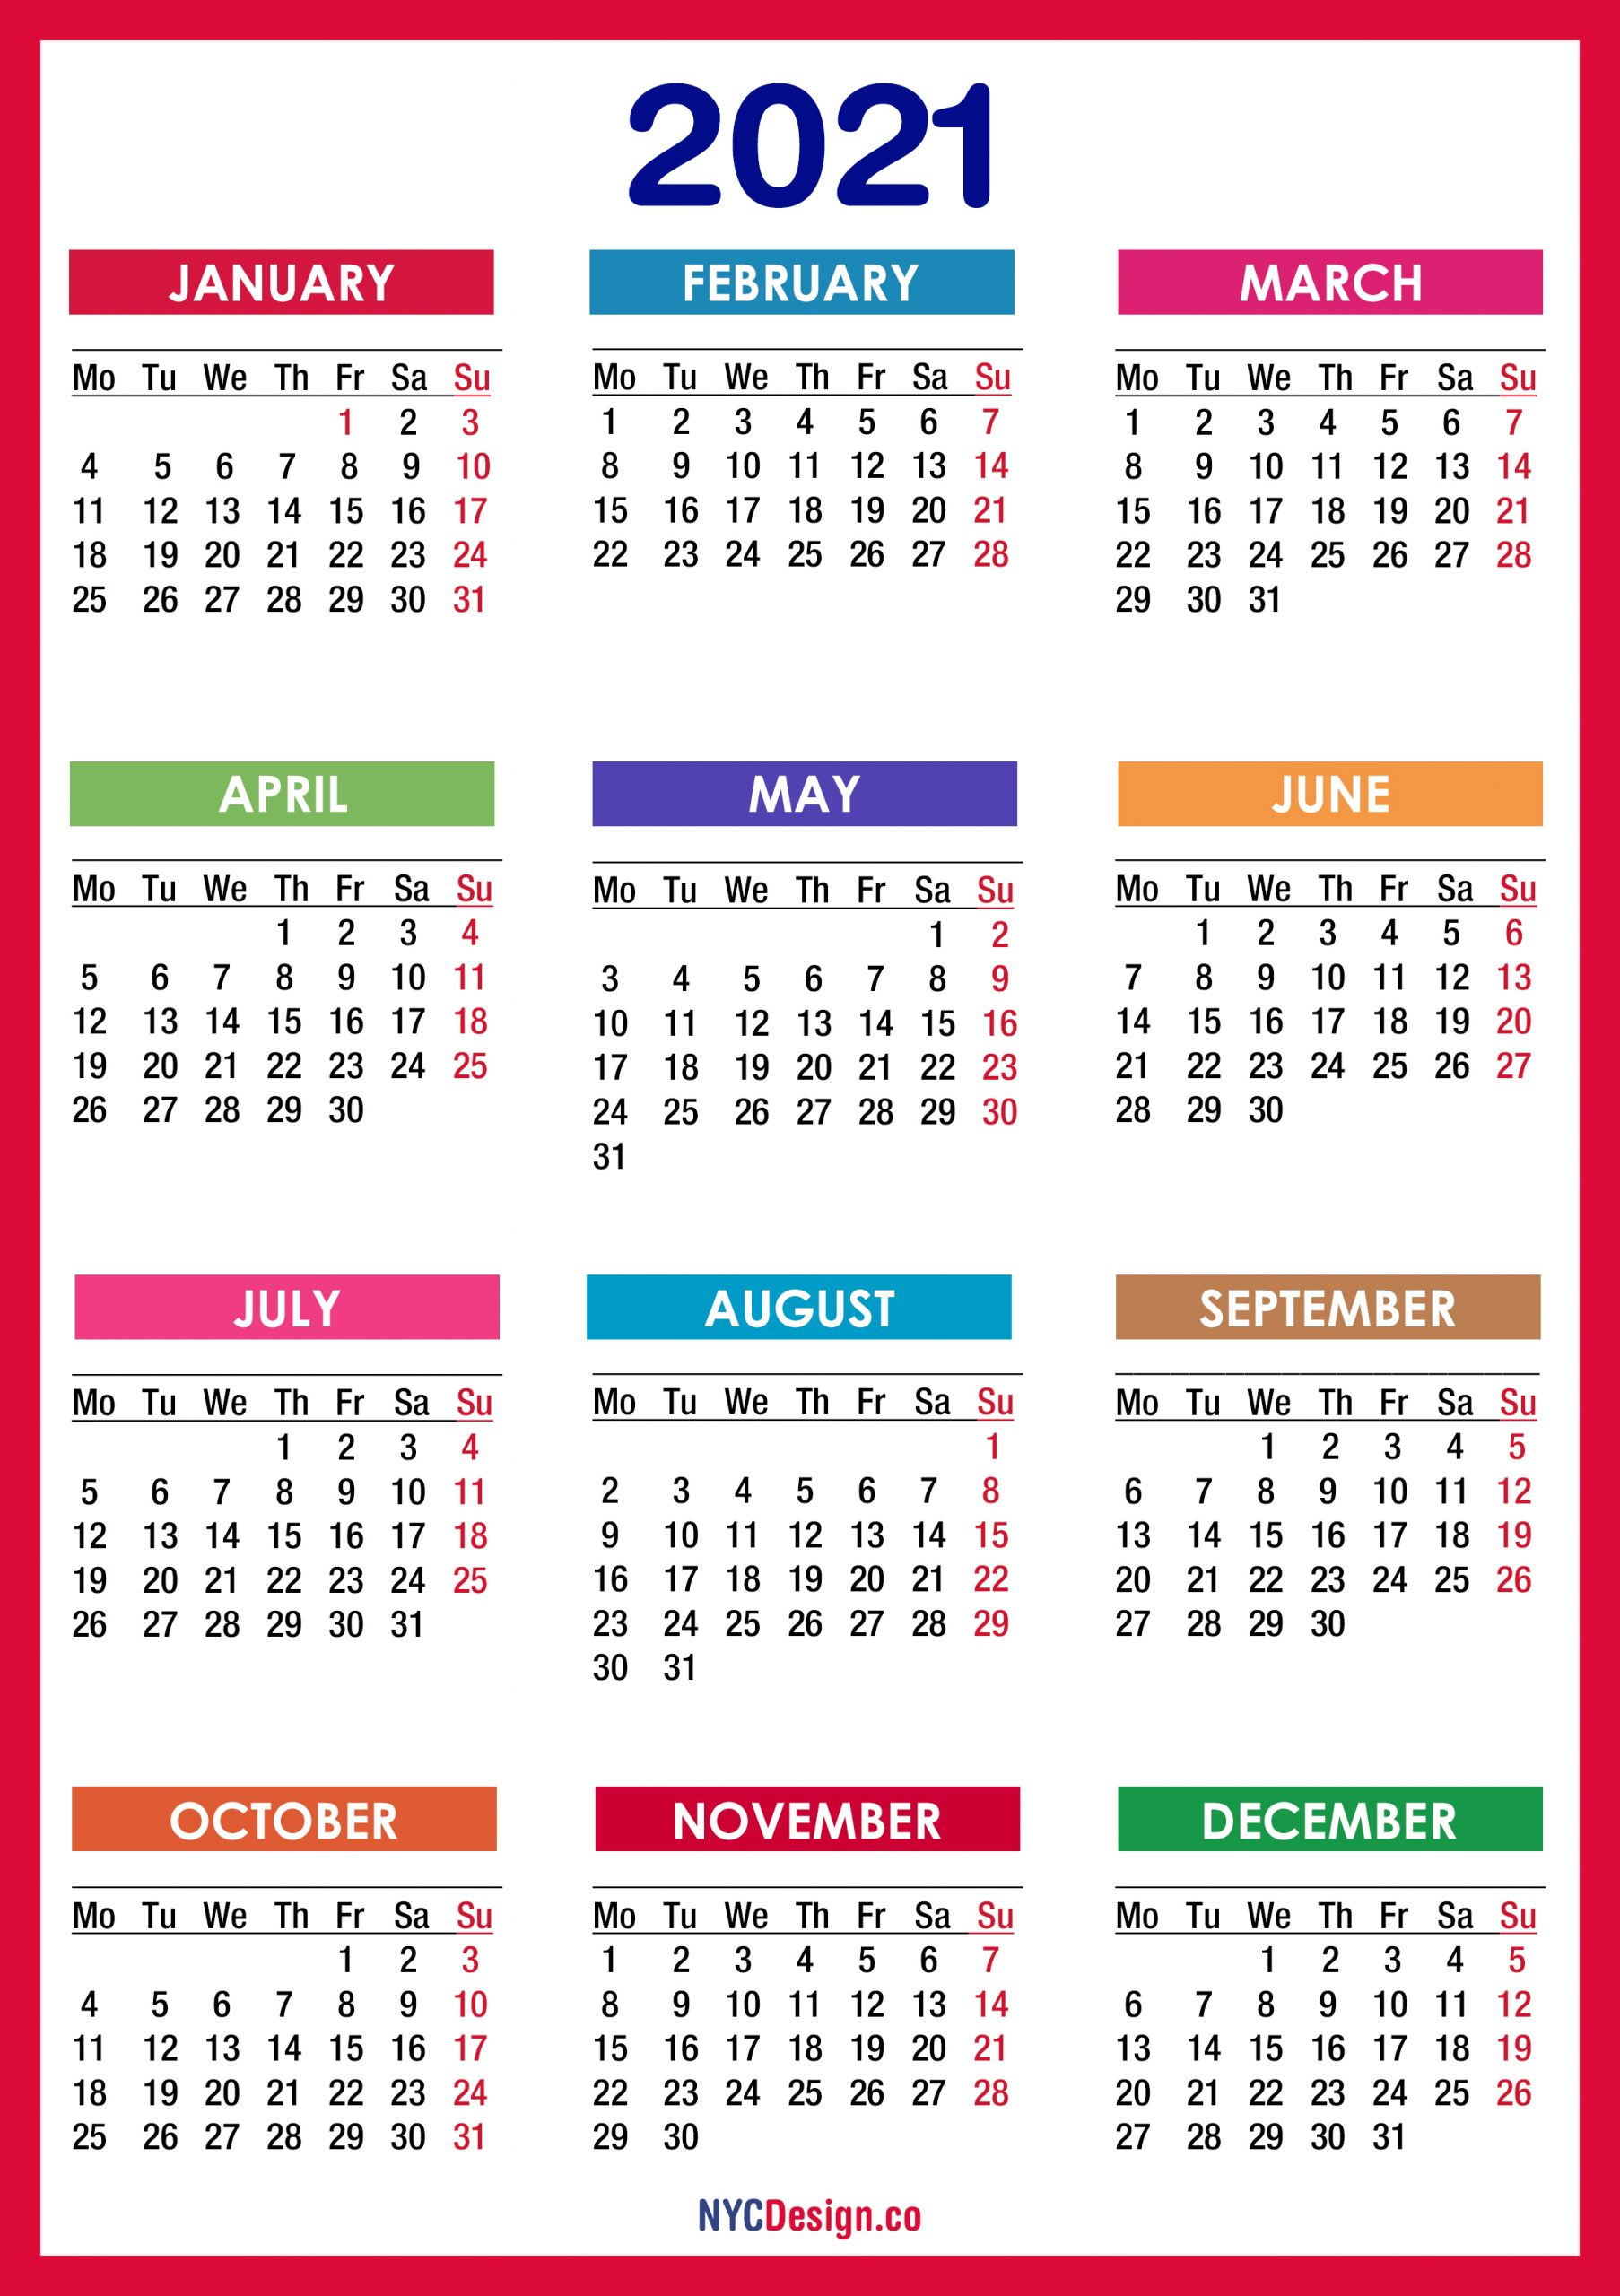 2021 Calendar Printable Free Pdf Colorful Red Orange